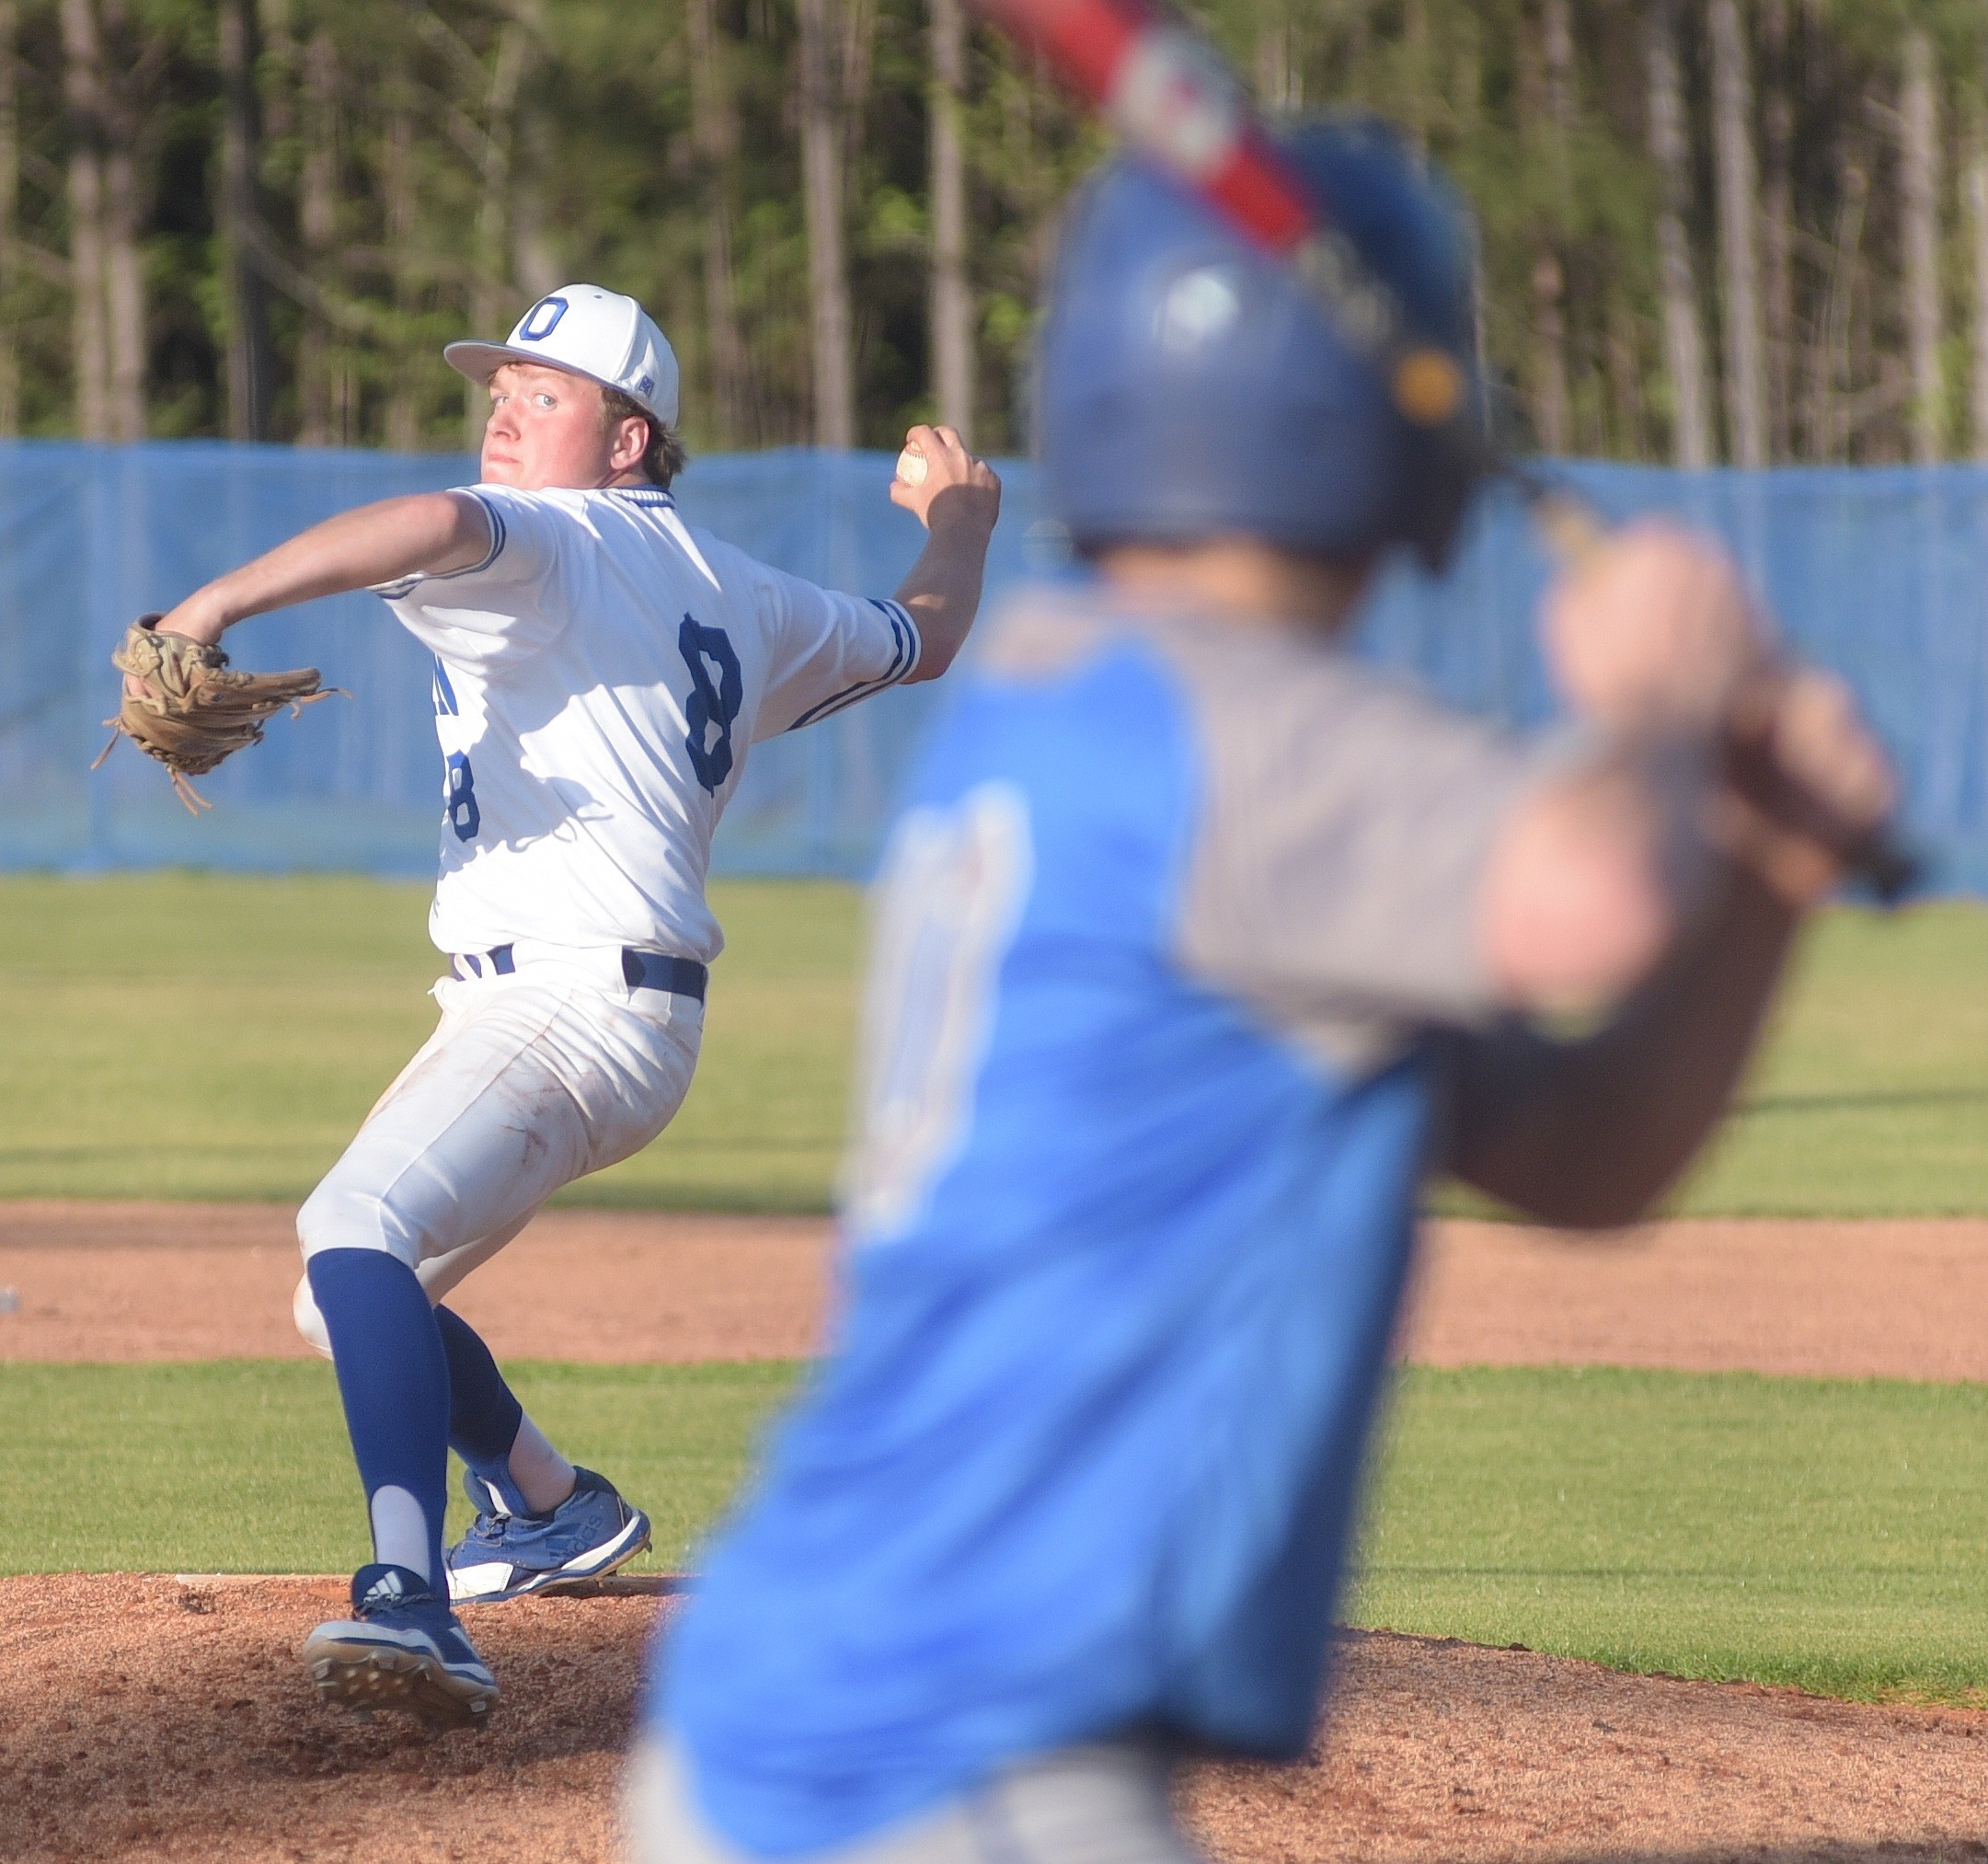 Oakman's JonDawson Tittle pitches against Carbon Hill on Tuesday. The Wildcats closed out area play with a perfect 6-0 record after winning the opener 7-5. Oakman will host a first-round playoff series next Friday.